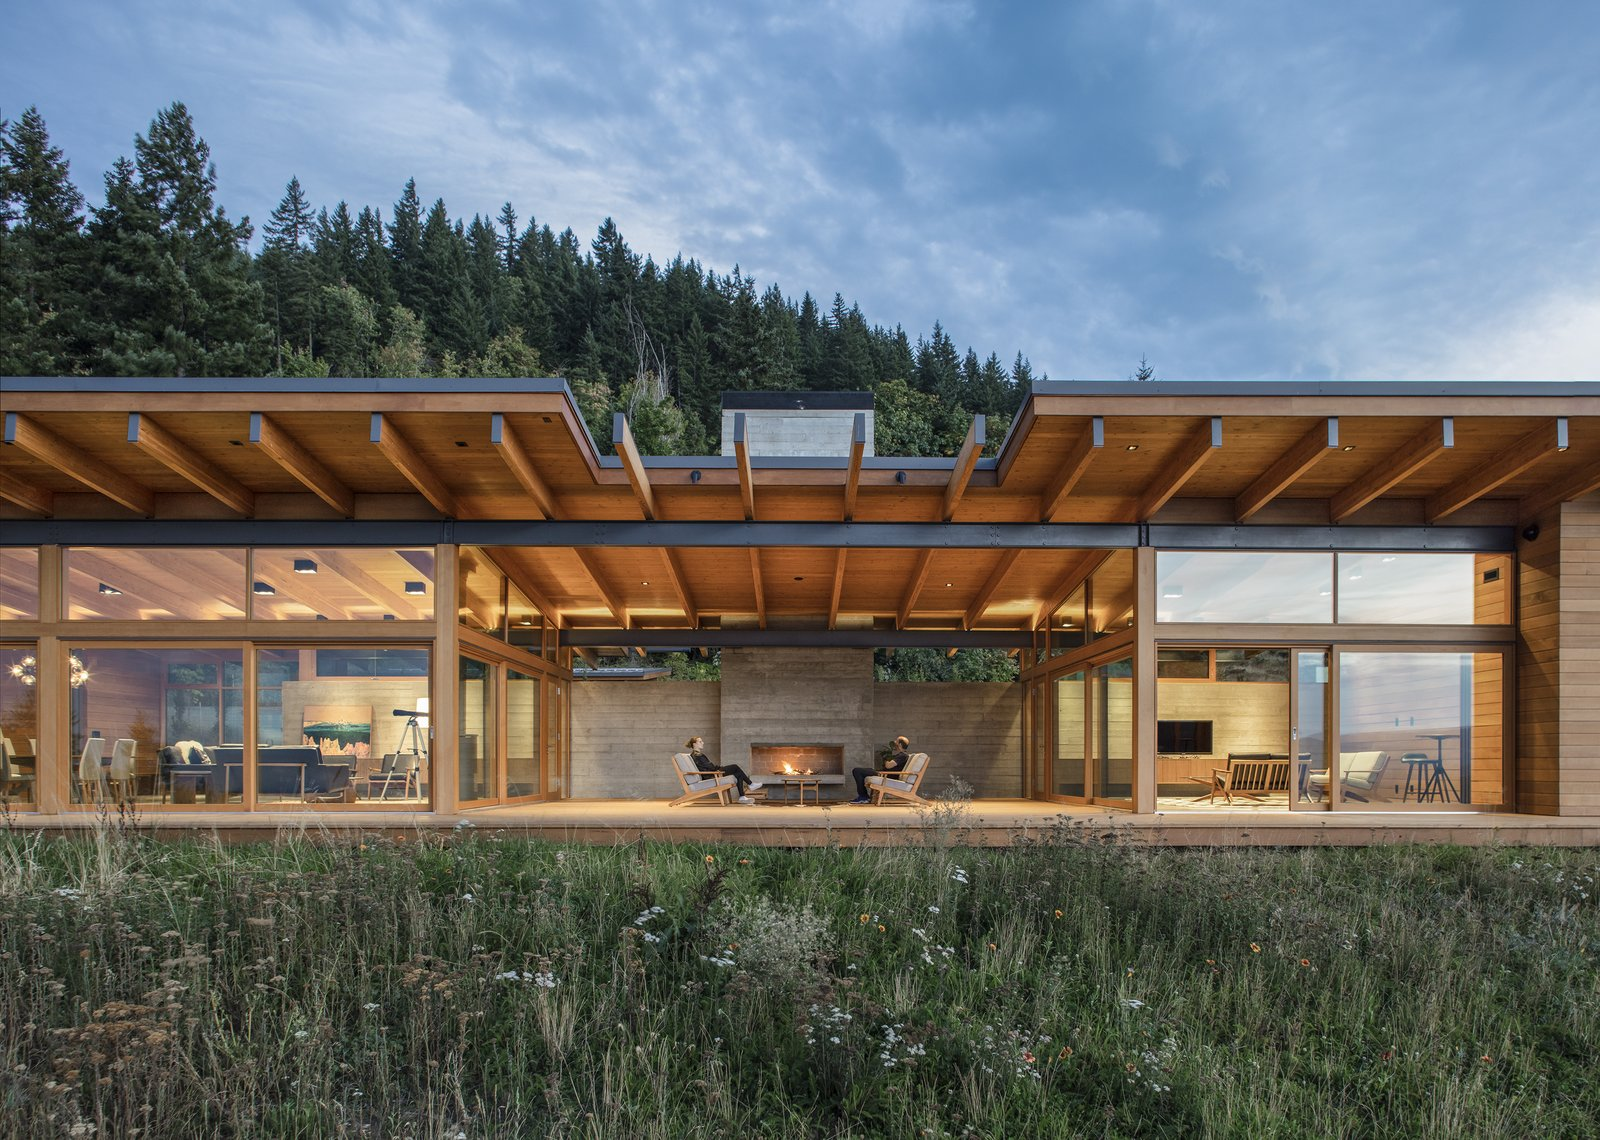 The Hood River Residence features a generous outdoor patio area that collects the public spaces of the home into one large indoor/outdoor entertaining space.